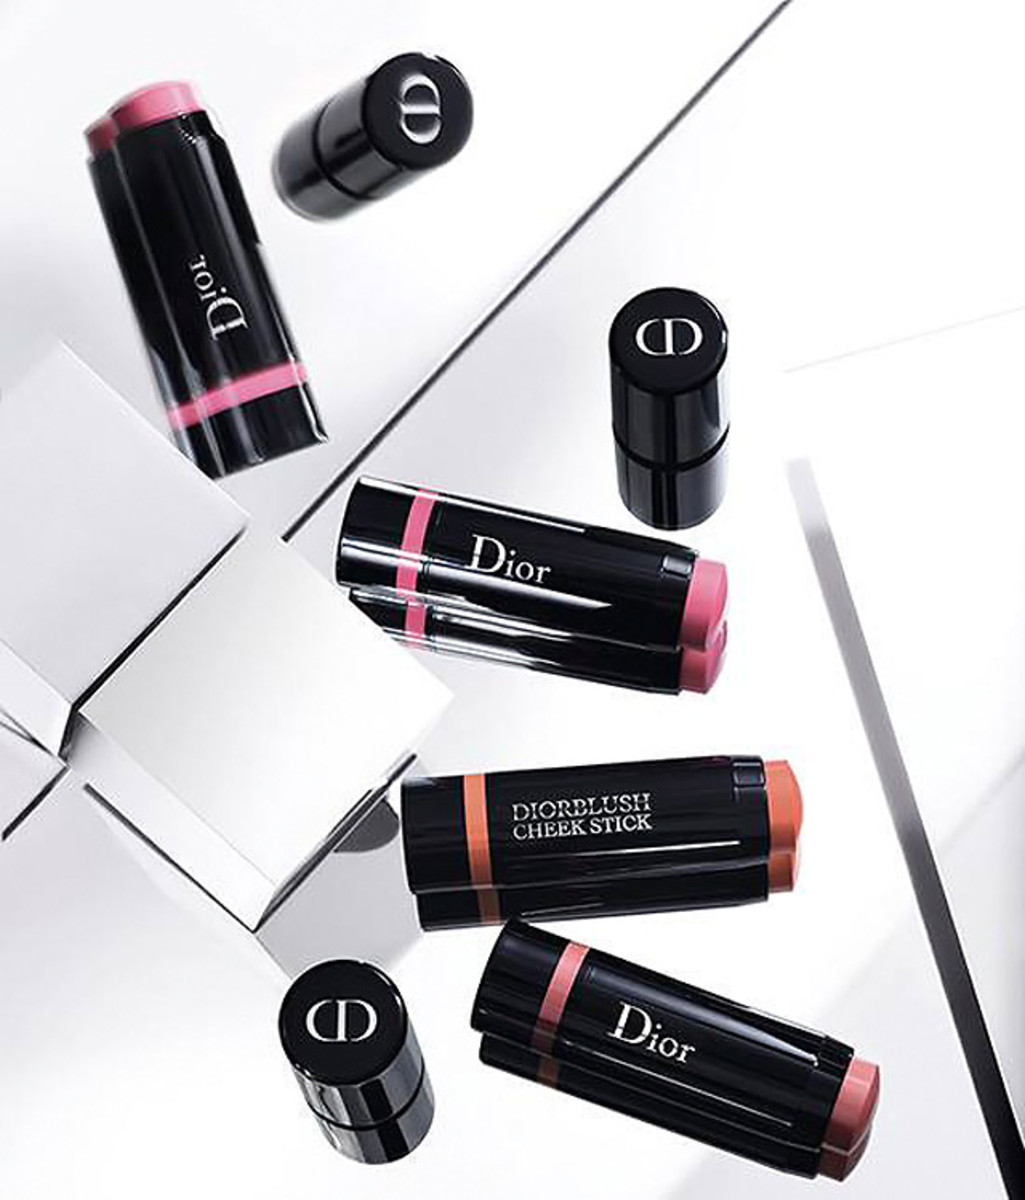 Dior Cosmopolite Fall 2015 makeup collection Cheek Sticks in three creamy shades